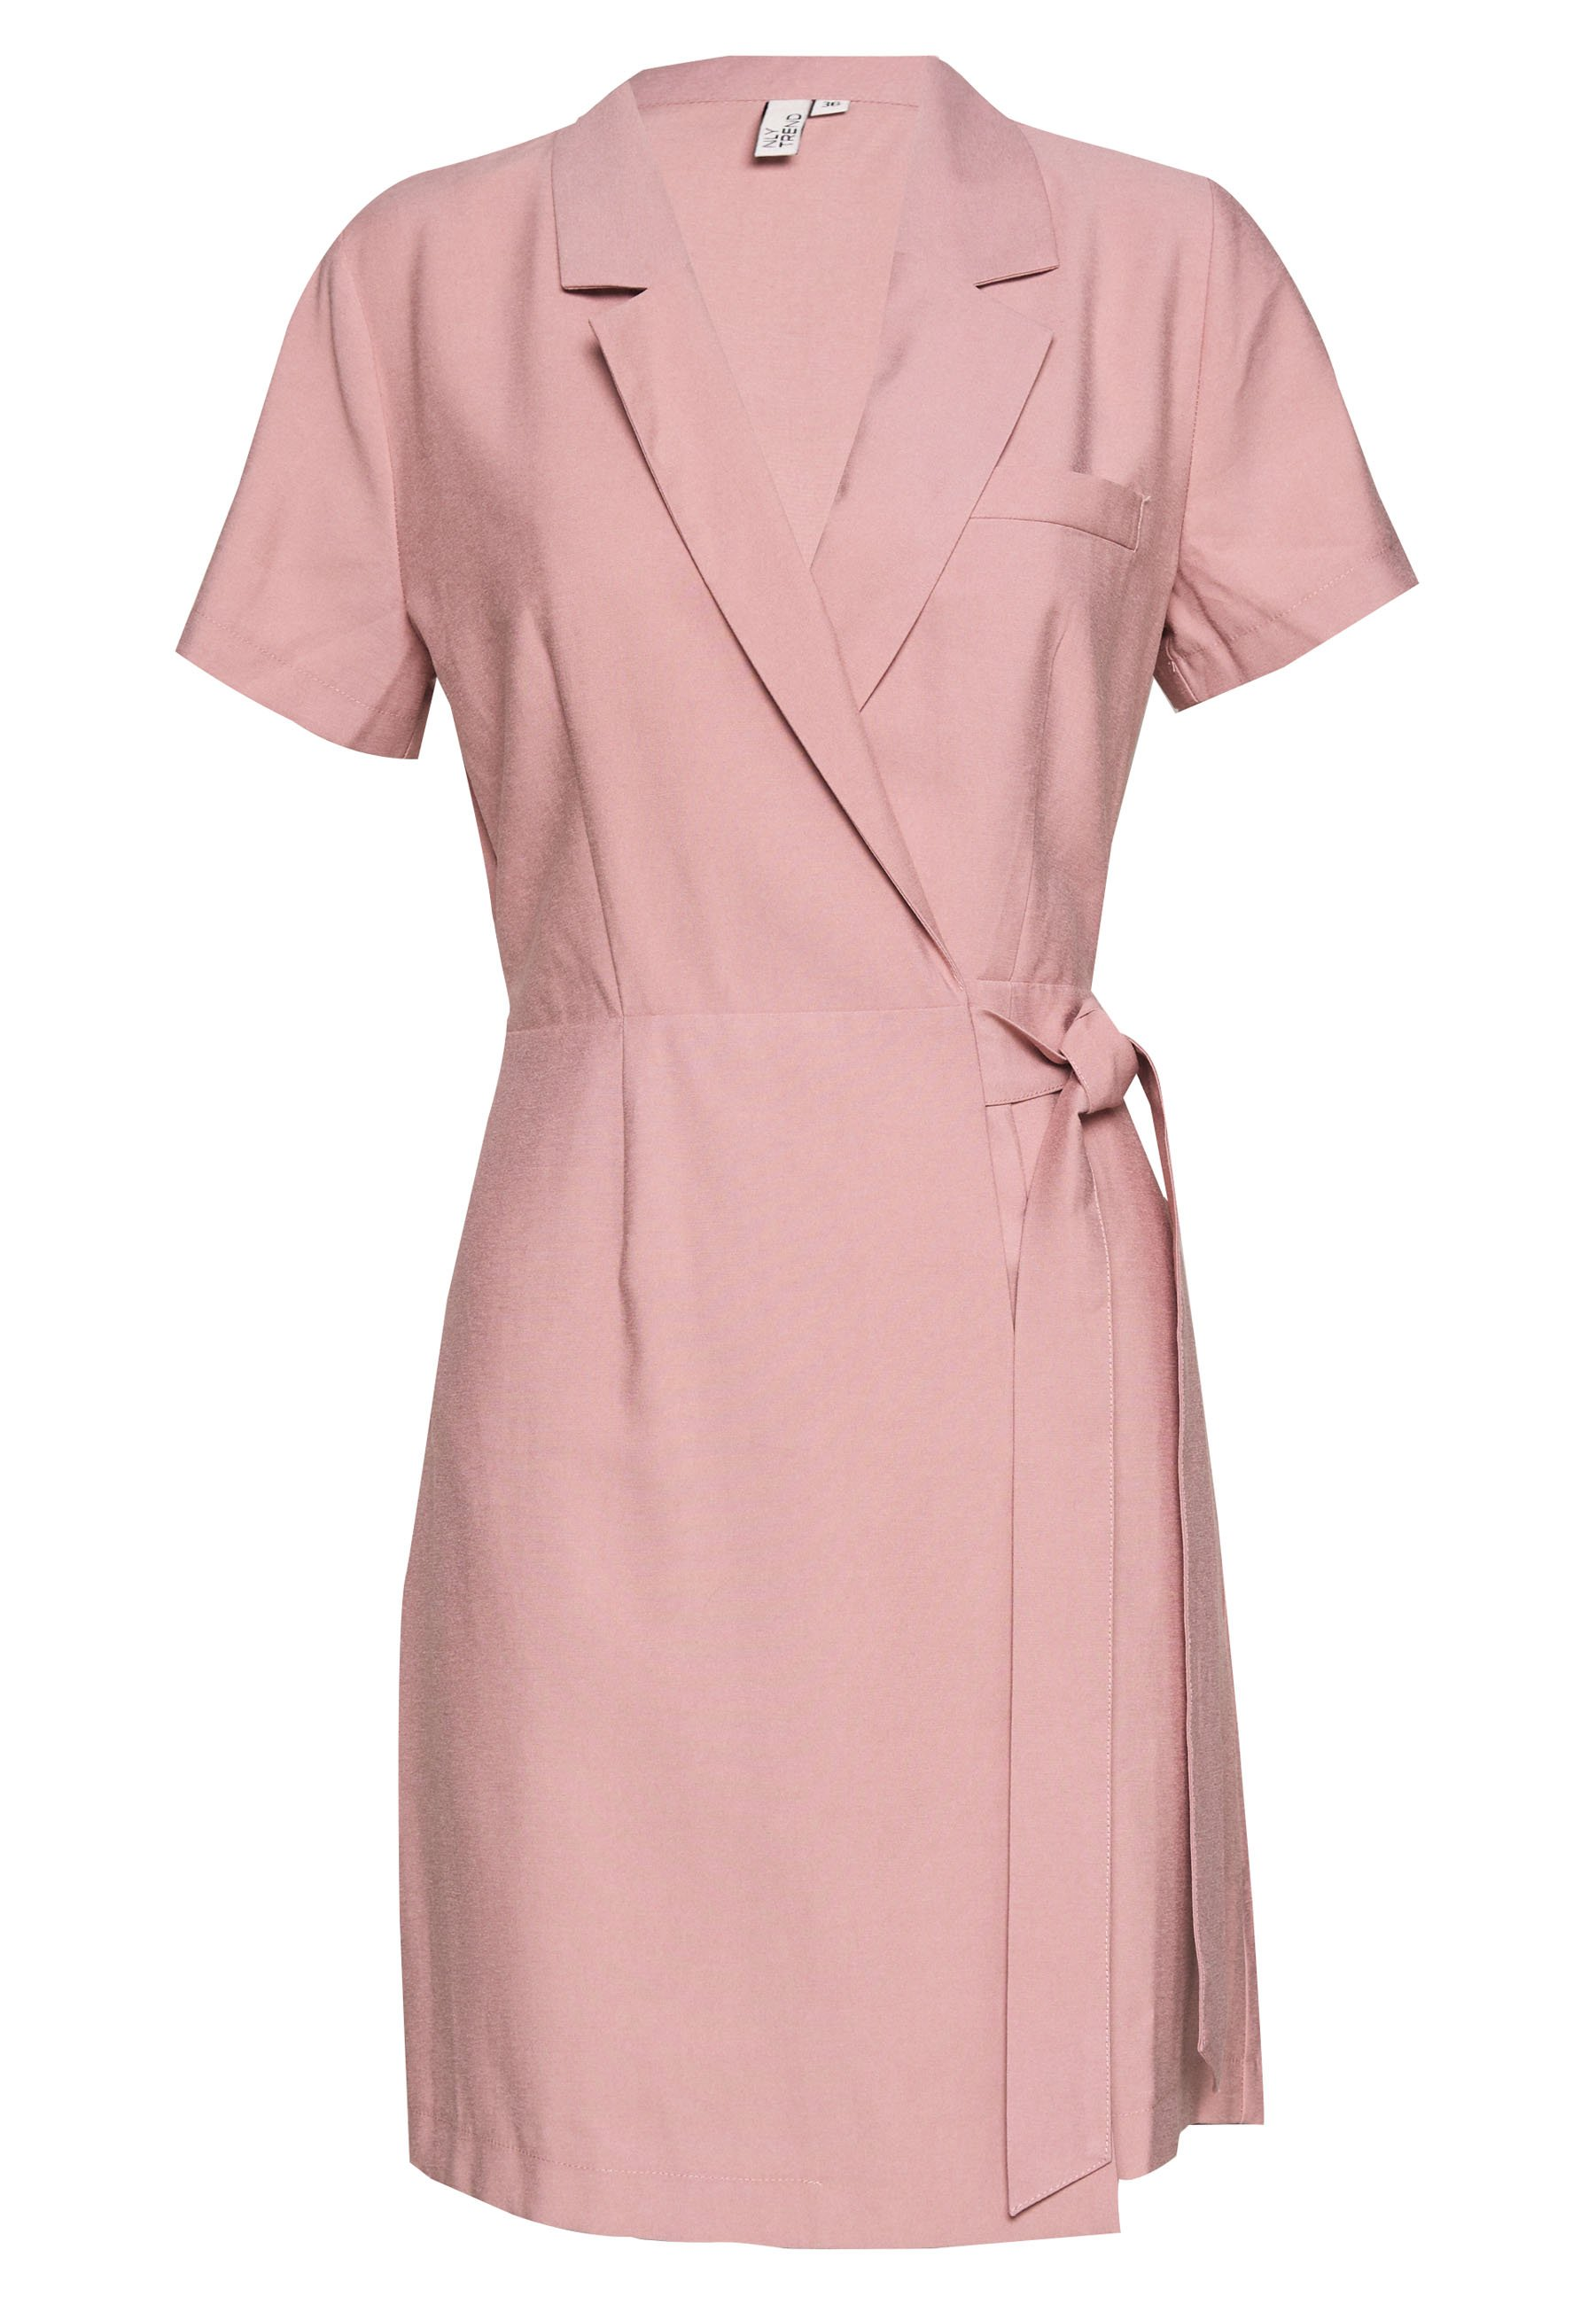 Monki KAREN DRESS Sukienka etui pink MOQ21C07R J11